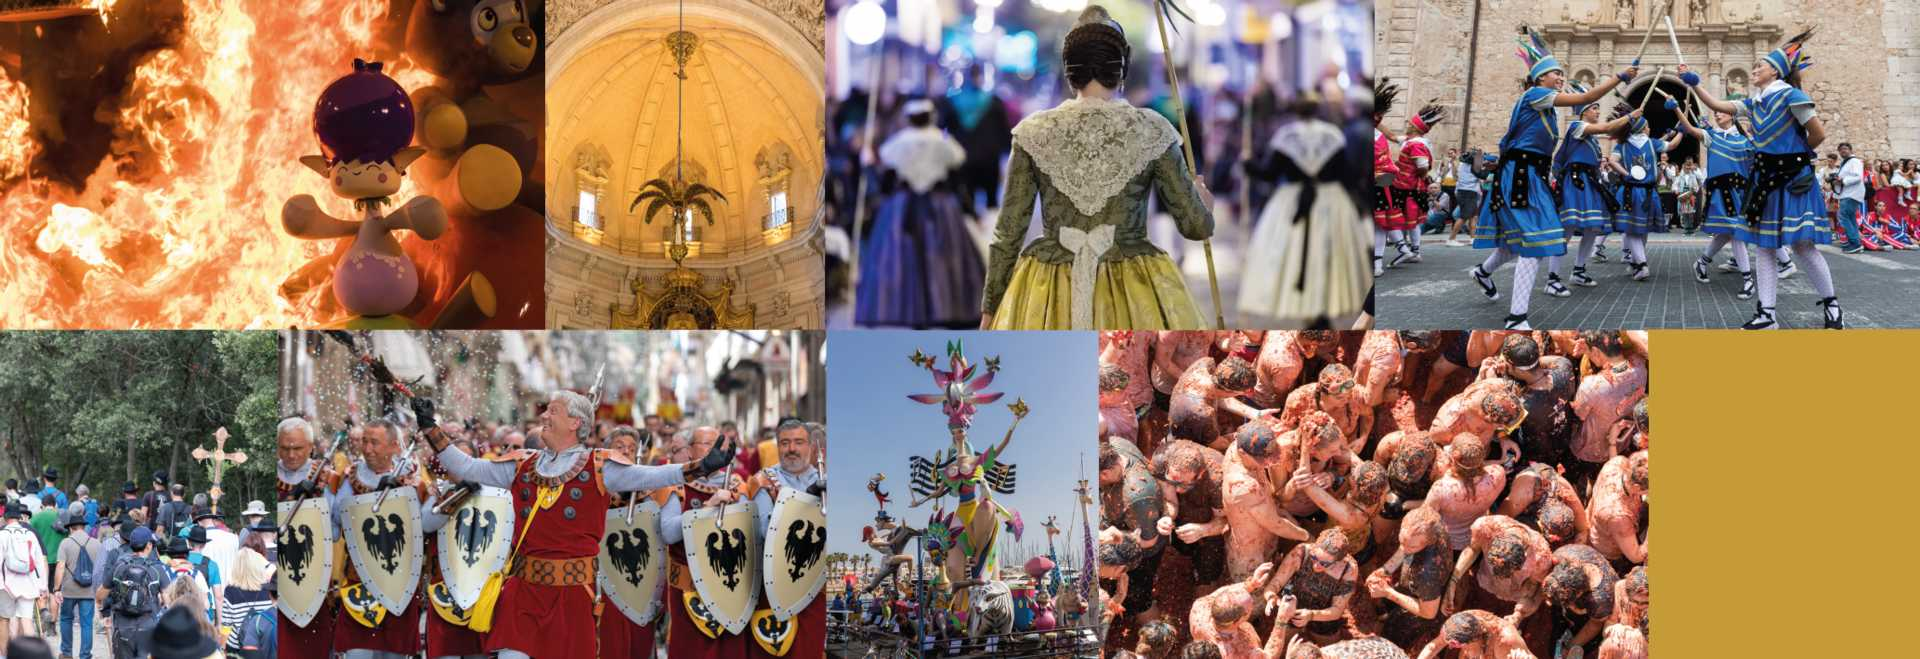 Festivities in honour of Sant Lluis